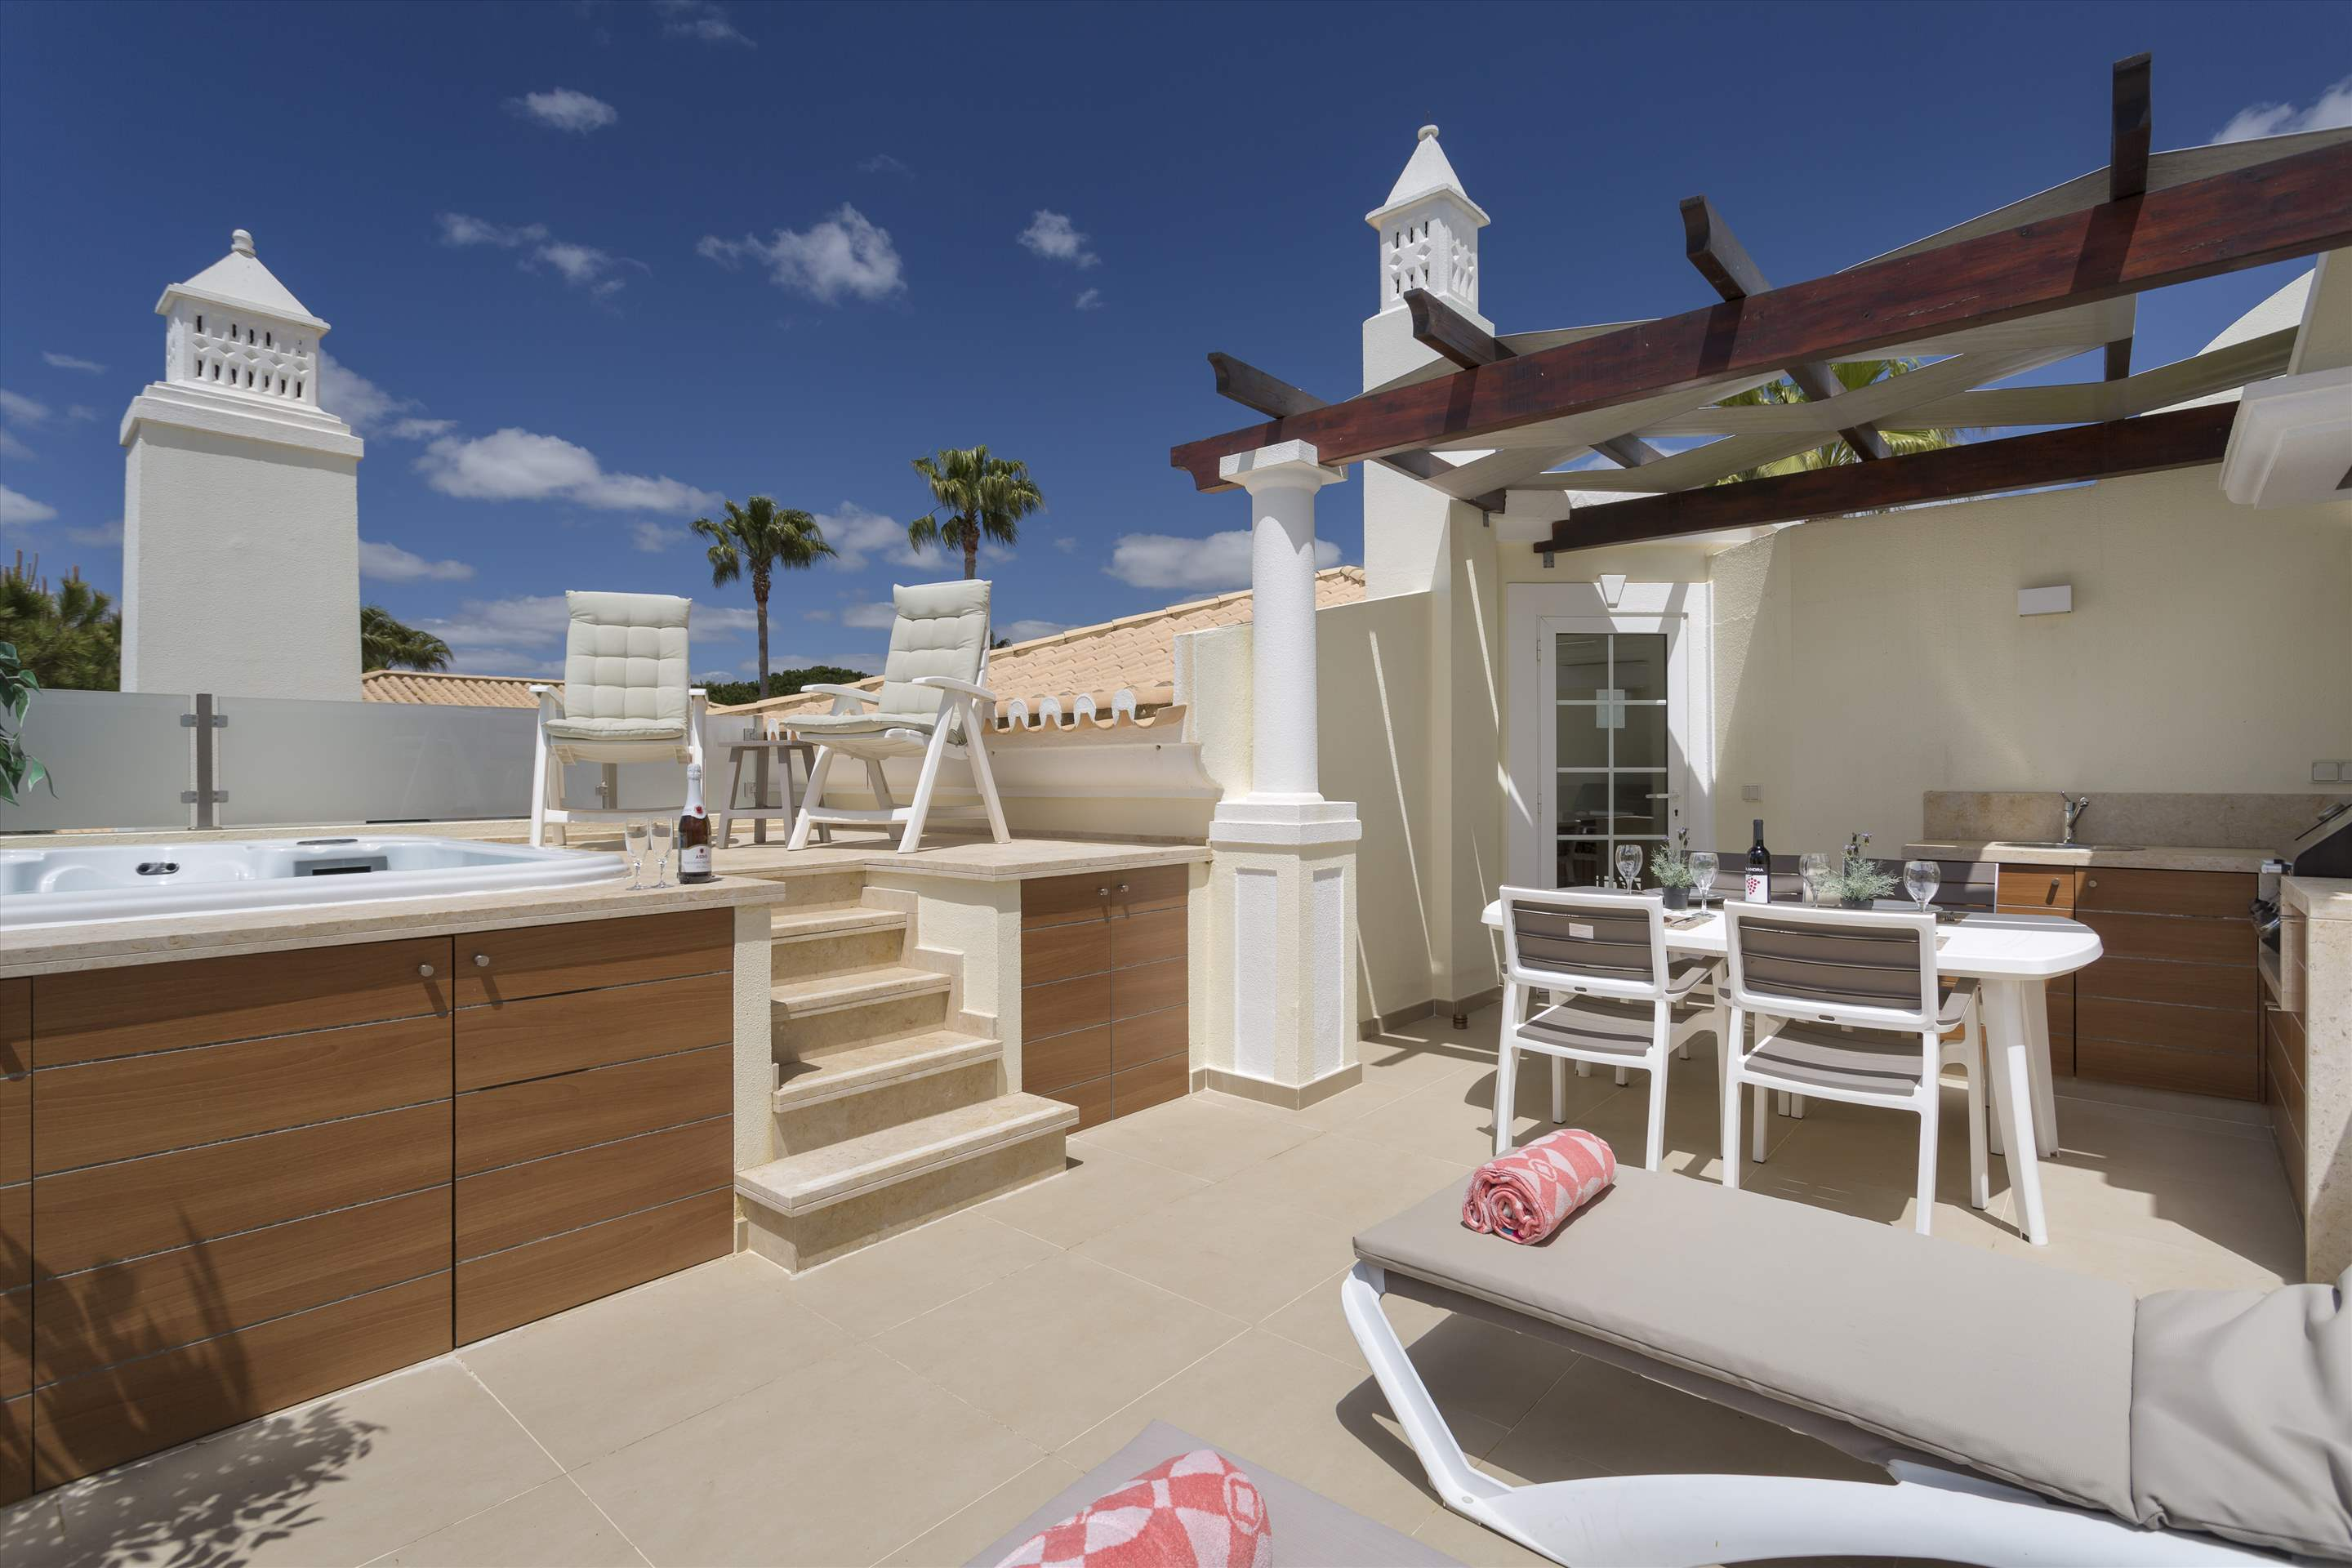 Apartment Jacinda, 2 bedroom apartment in Vale do Lobo, Algarve Photo #10